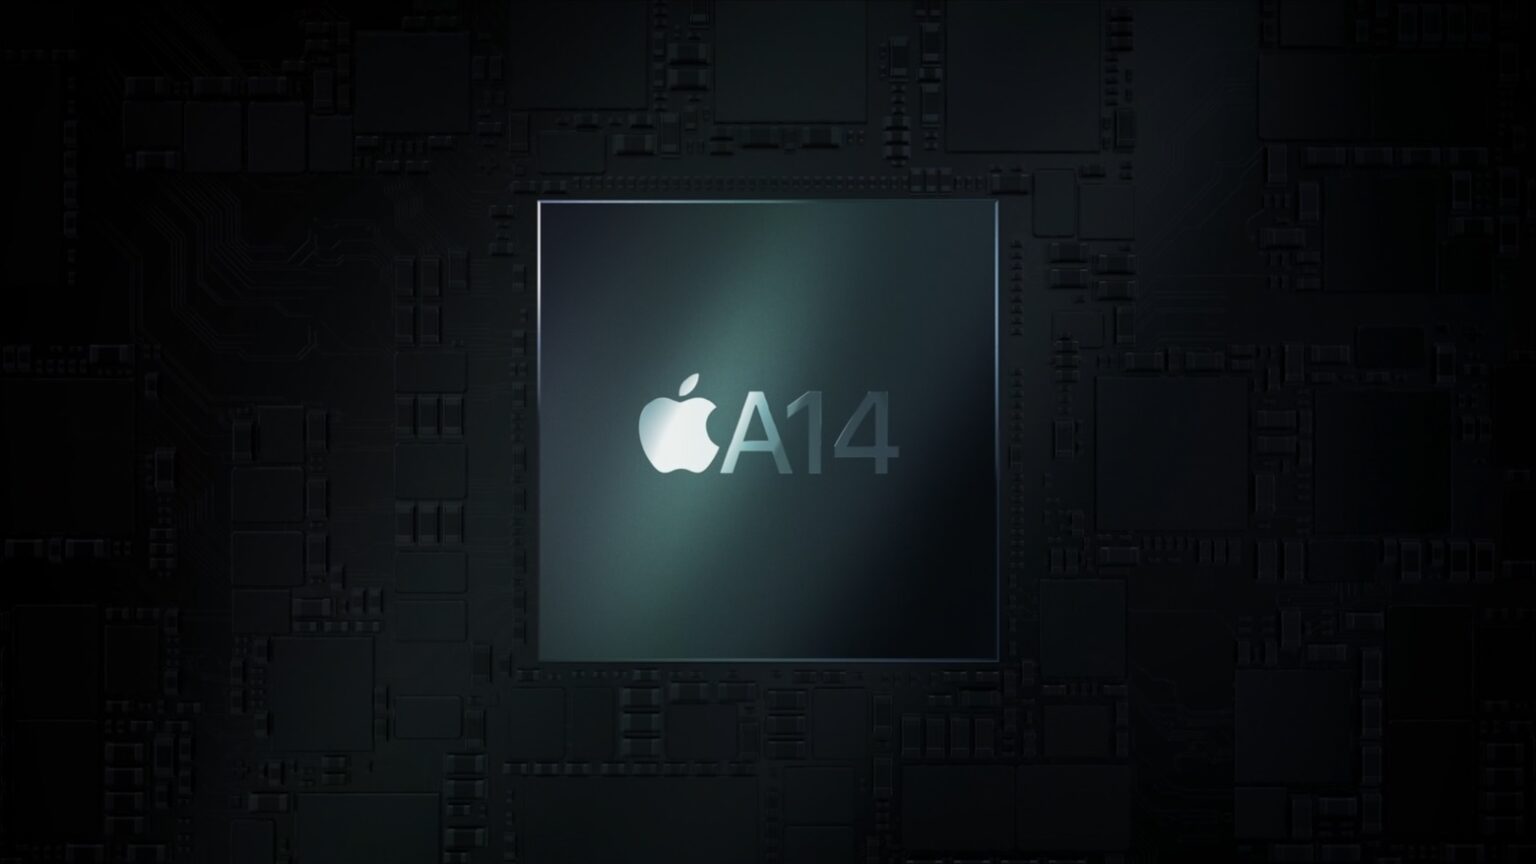 Apple A14 is made with an amazing 5nm production process.